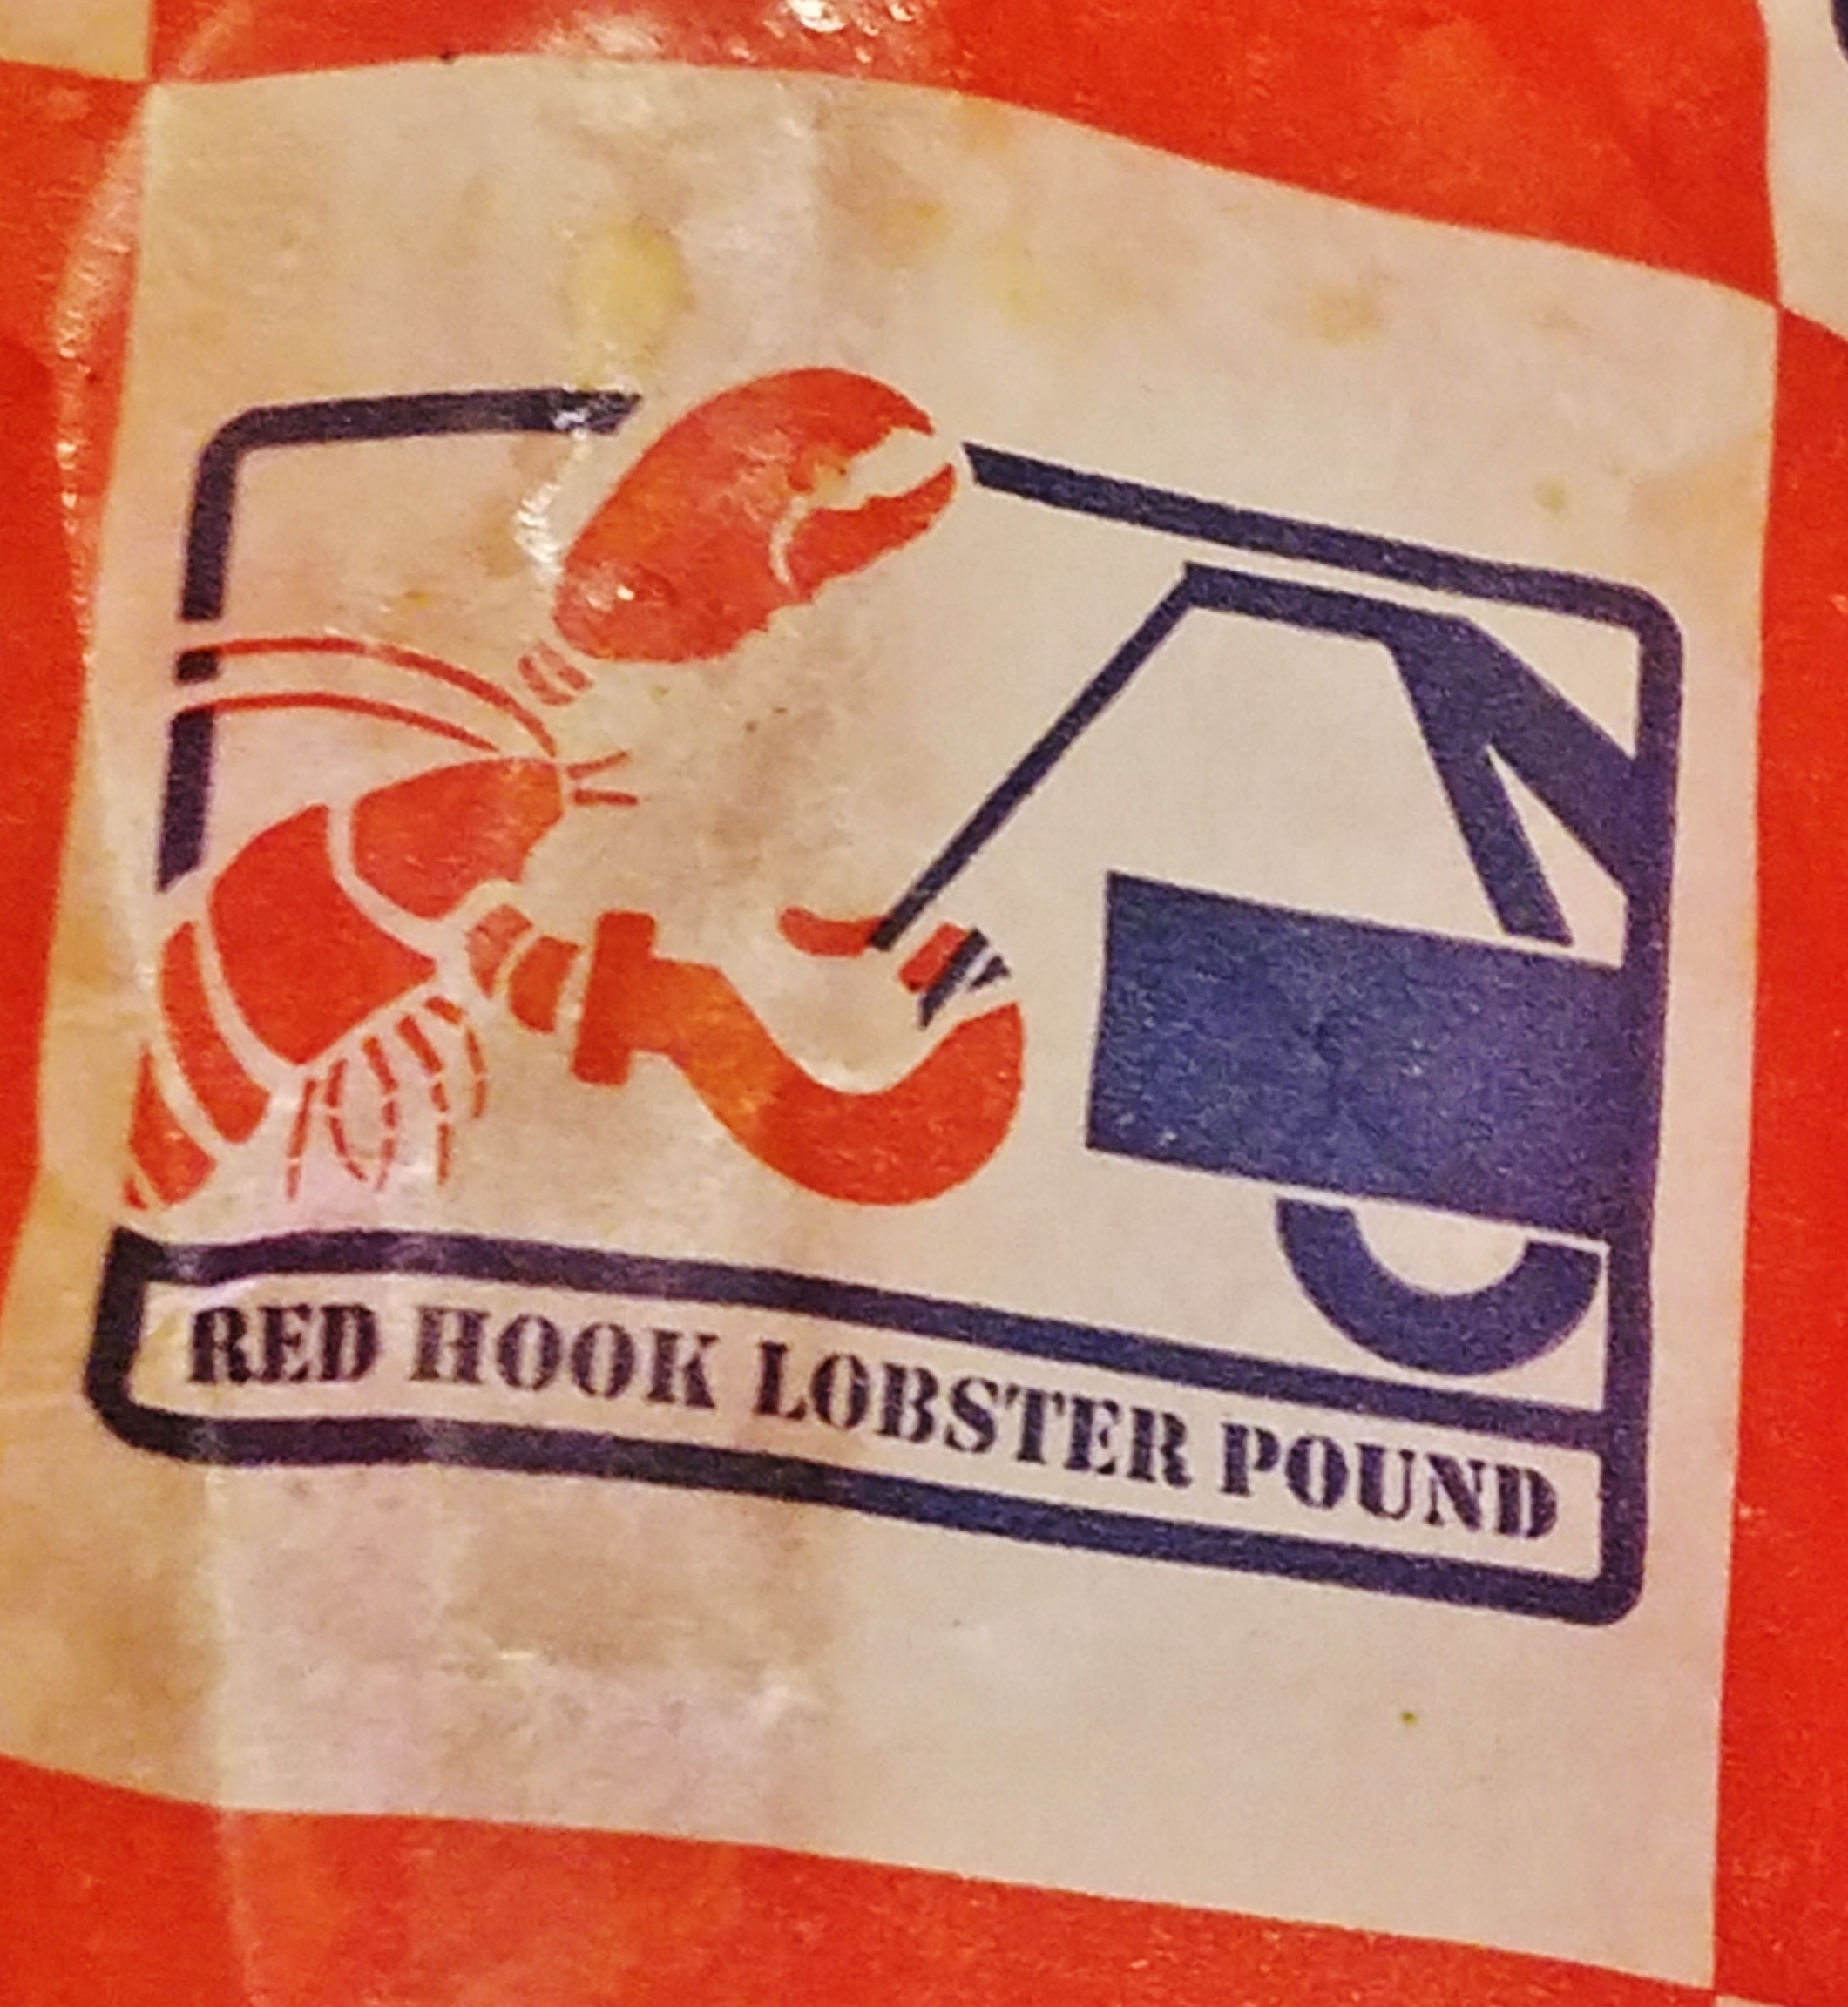 Red Hook Lobster Pound Logo - The Dairy Free TravelerThe Dairy Free ...